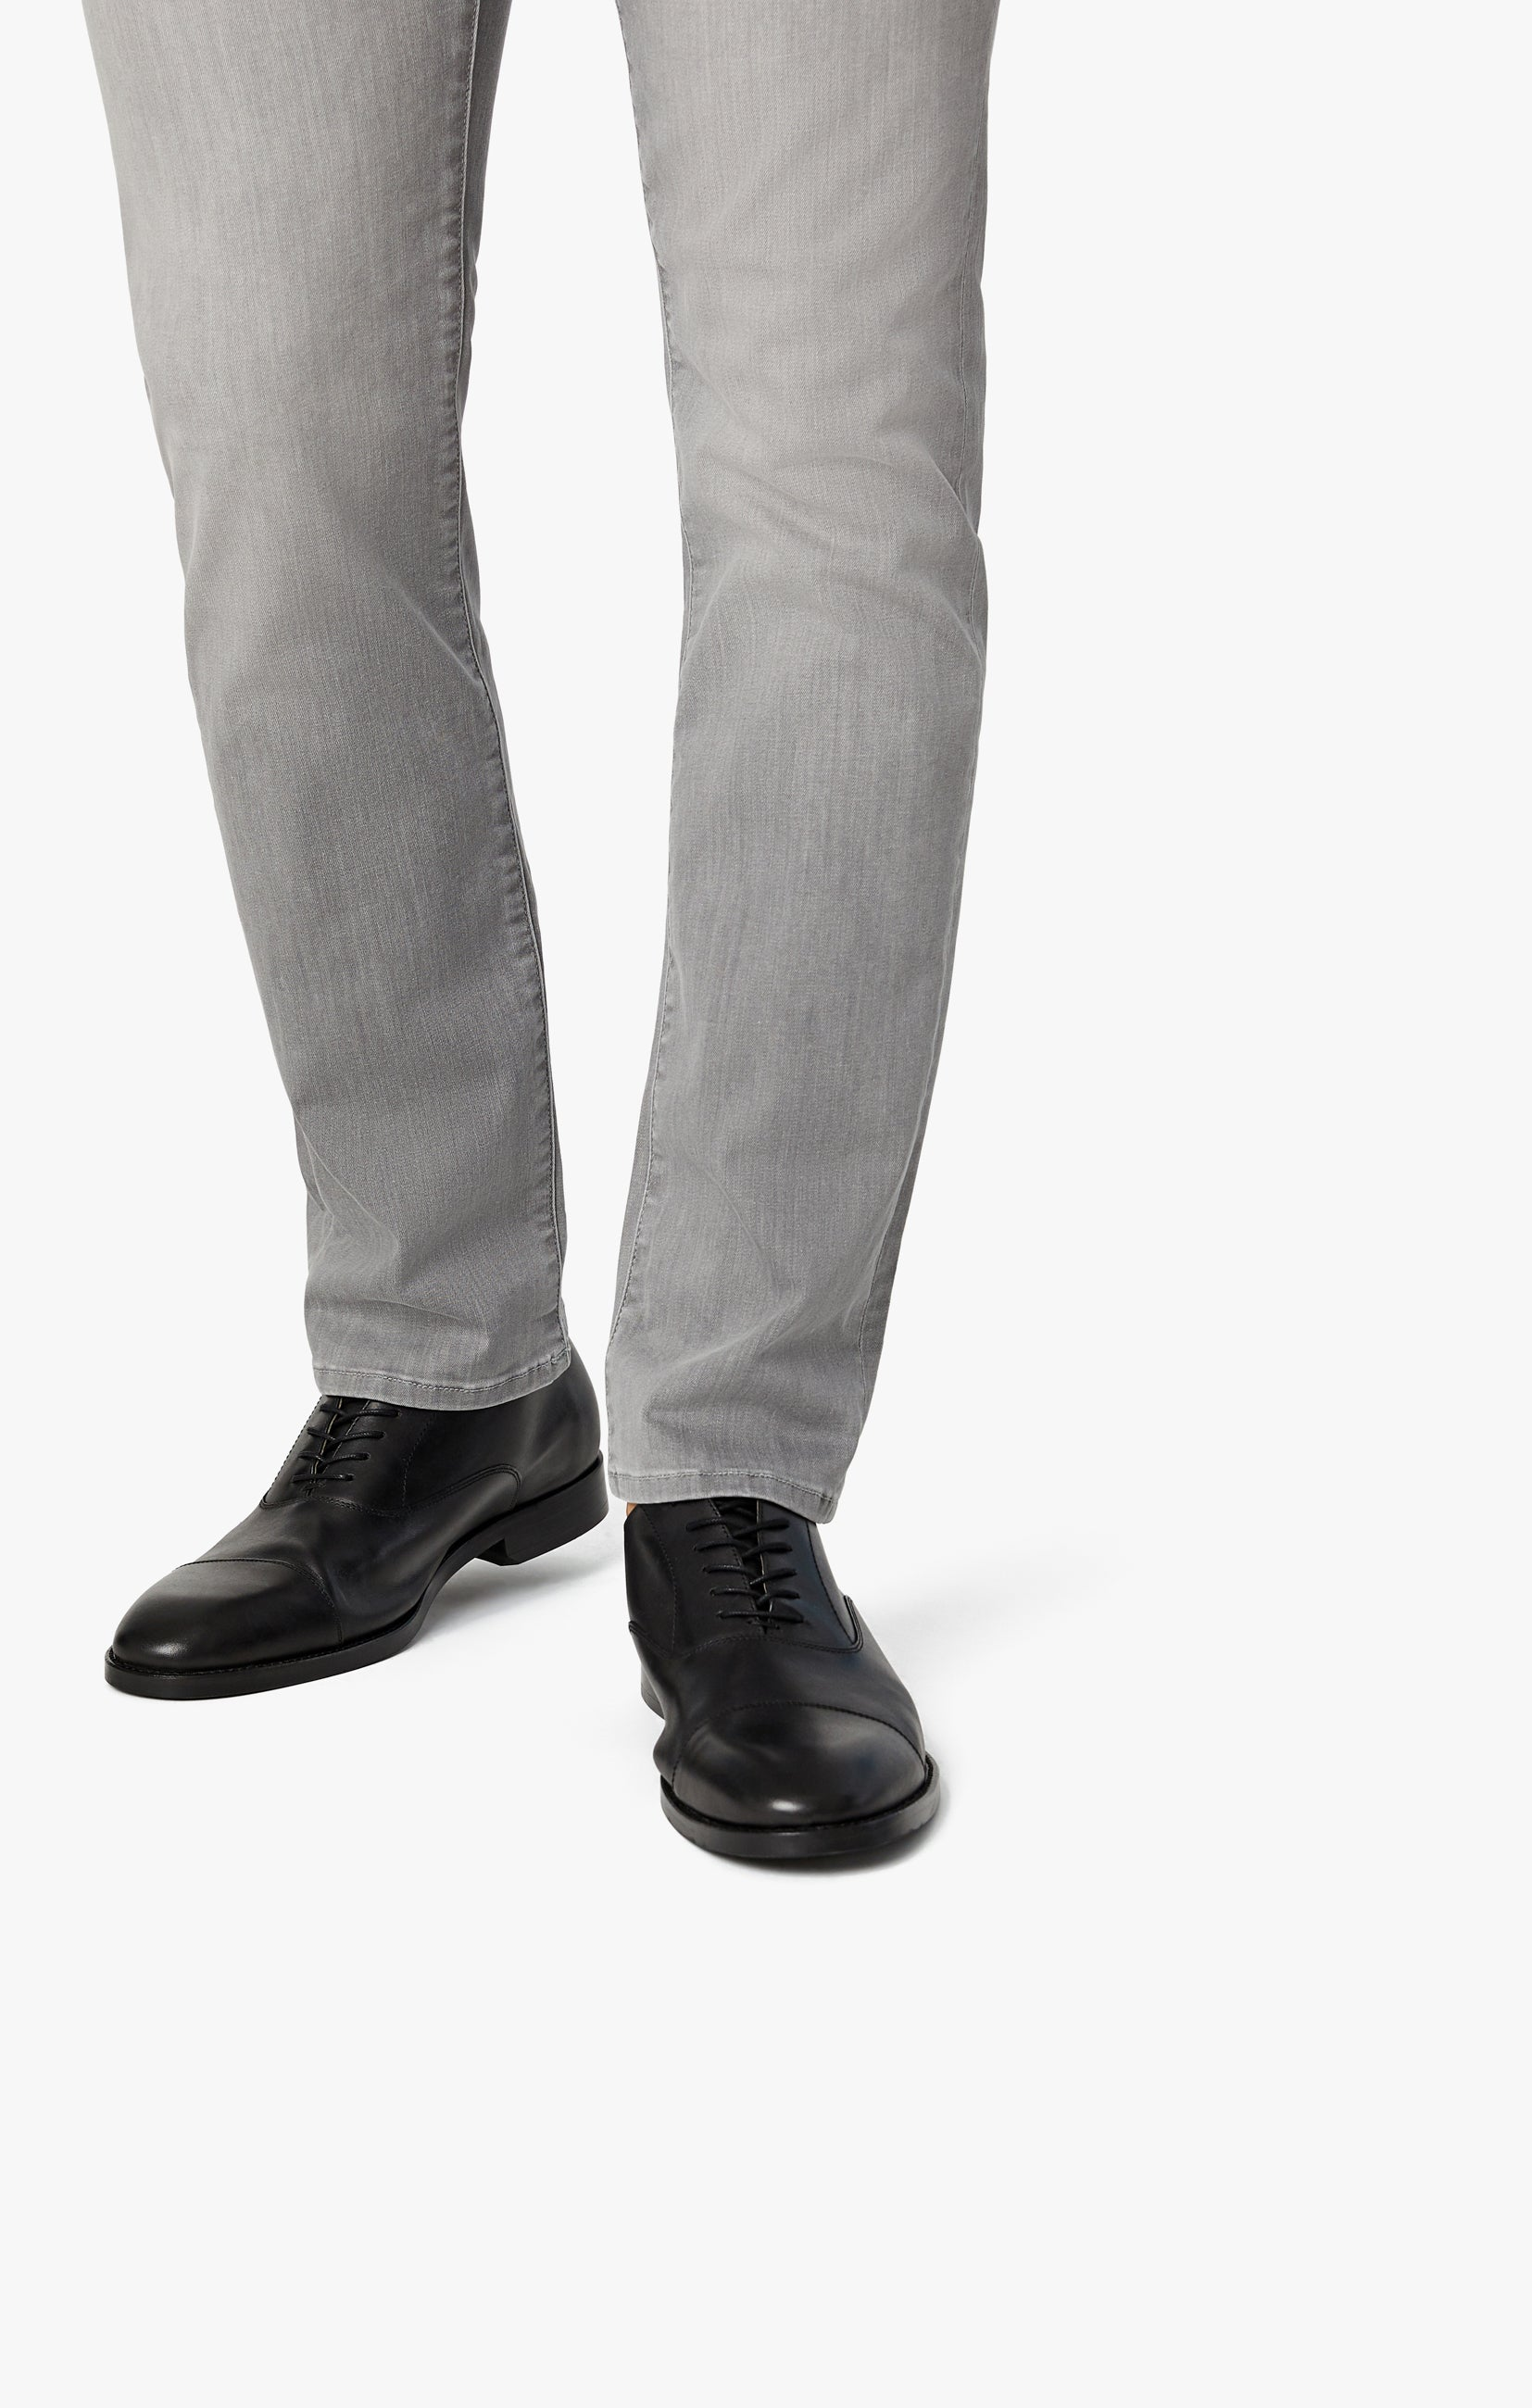 Courage Straight Leg Jeans in Grey Heritage Image 5